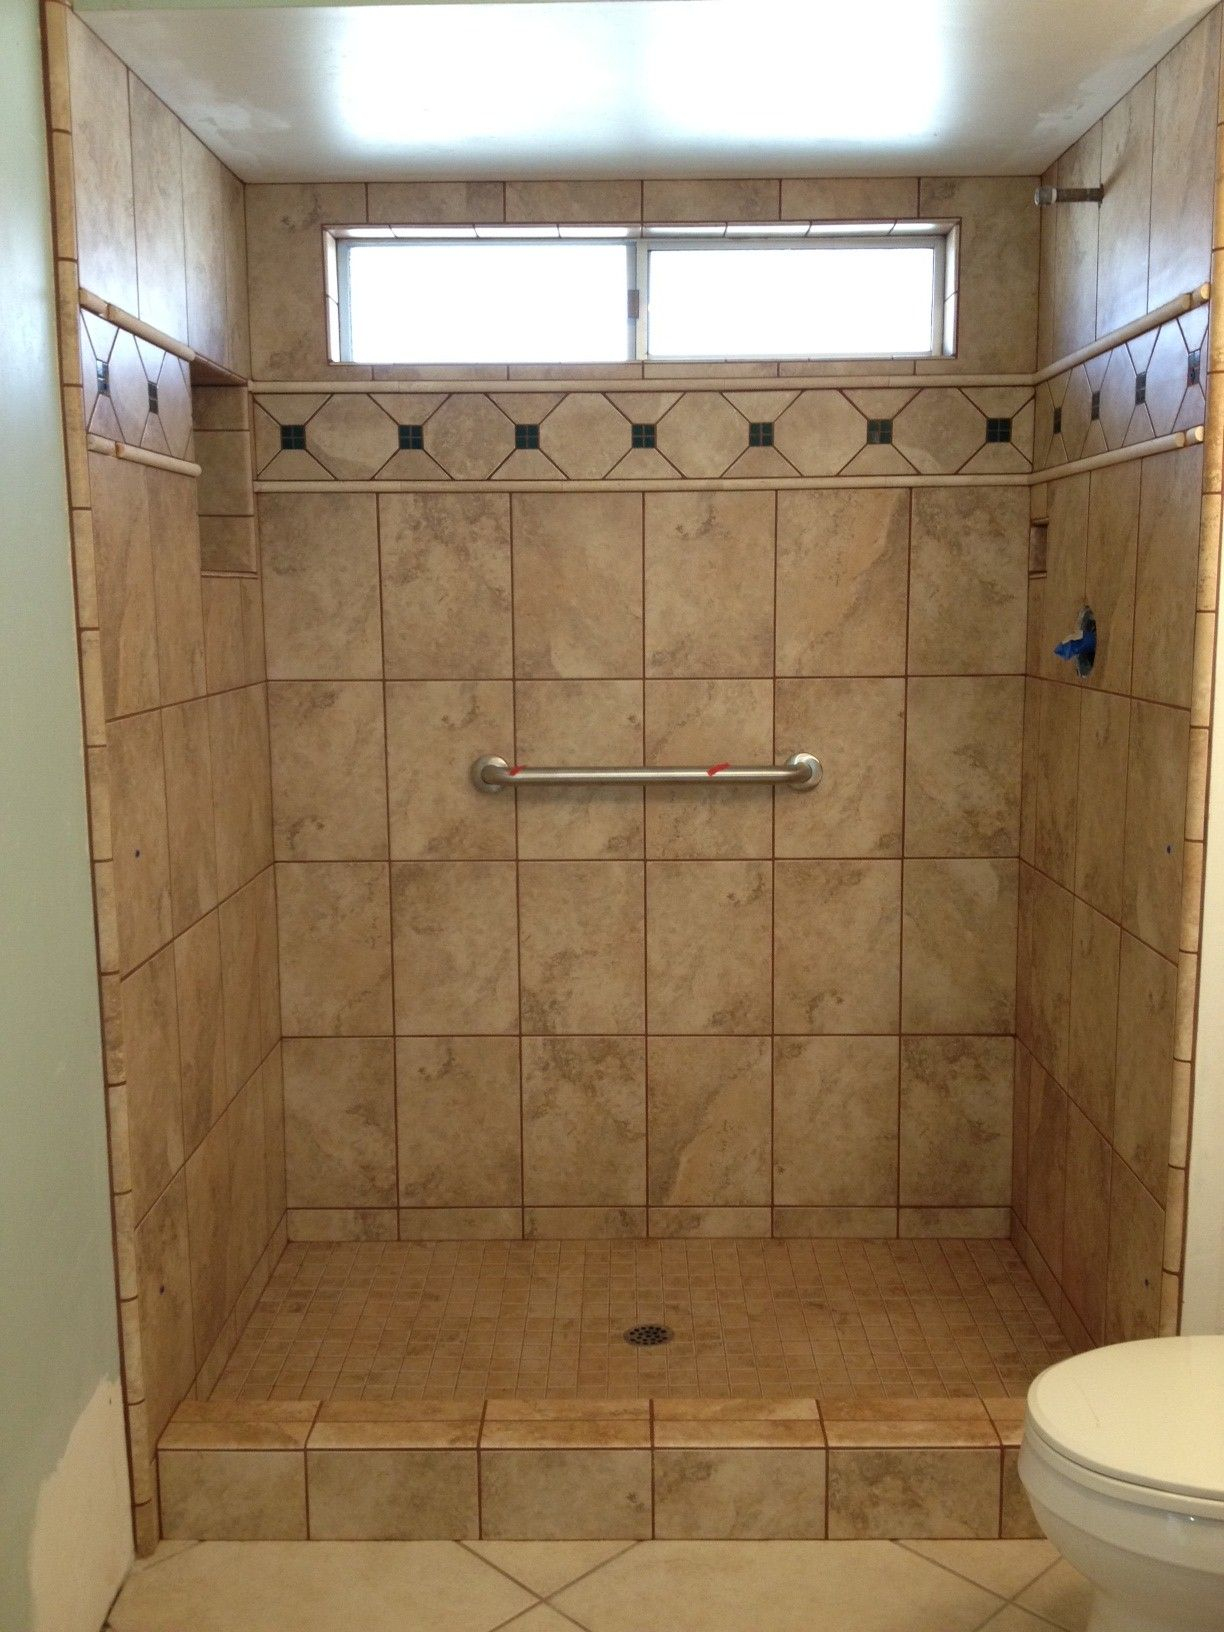 Photos of tiled shower stalls photos gallery custom for Small bathroom natural